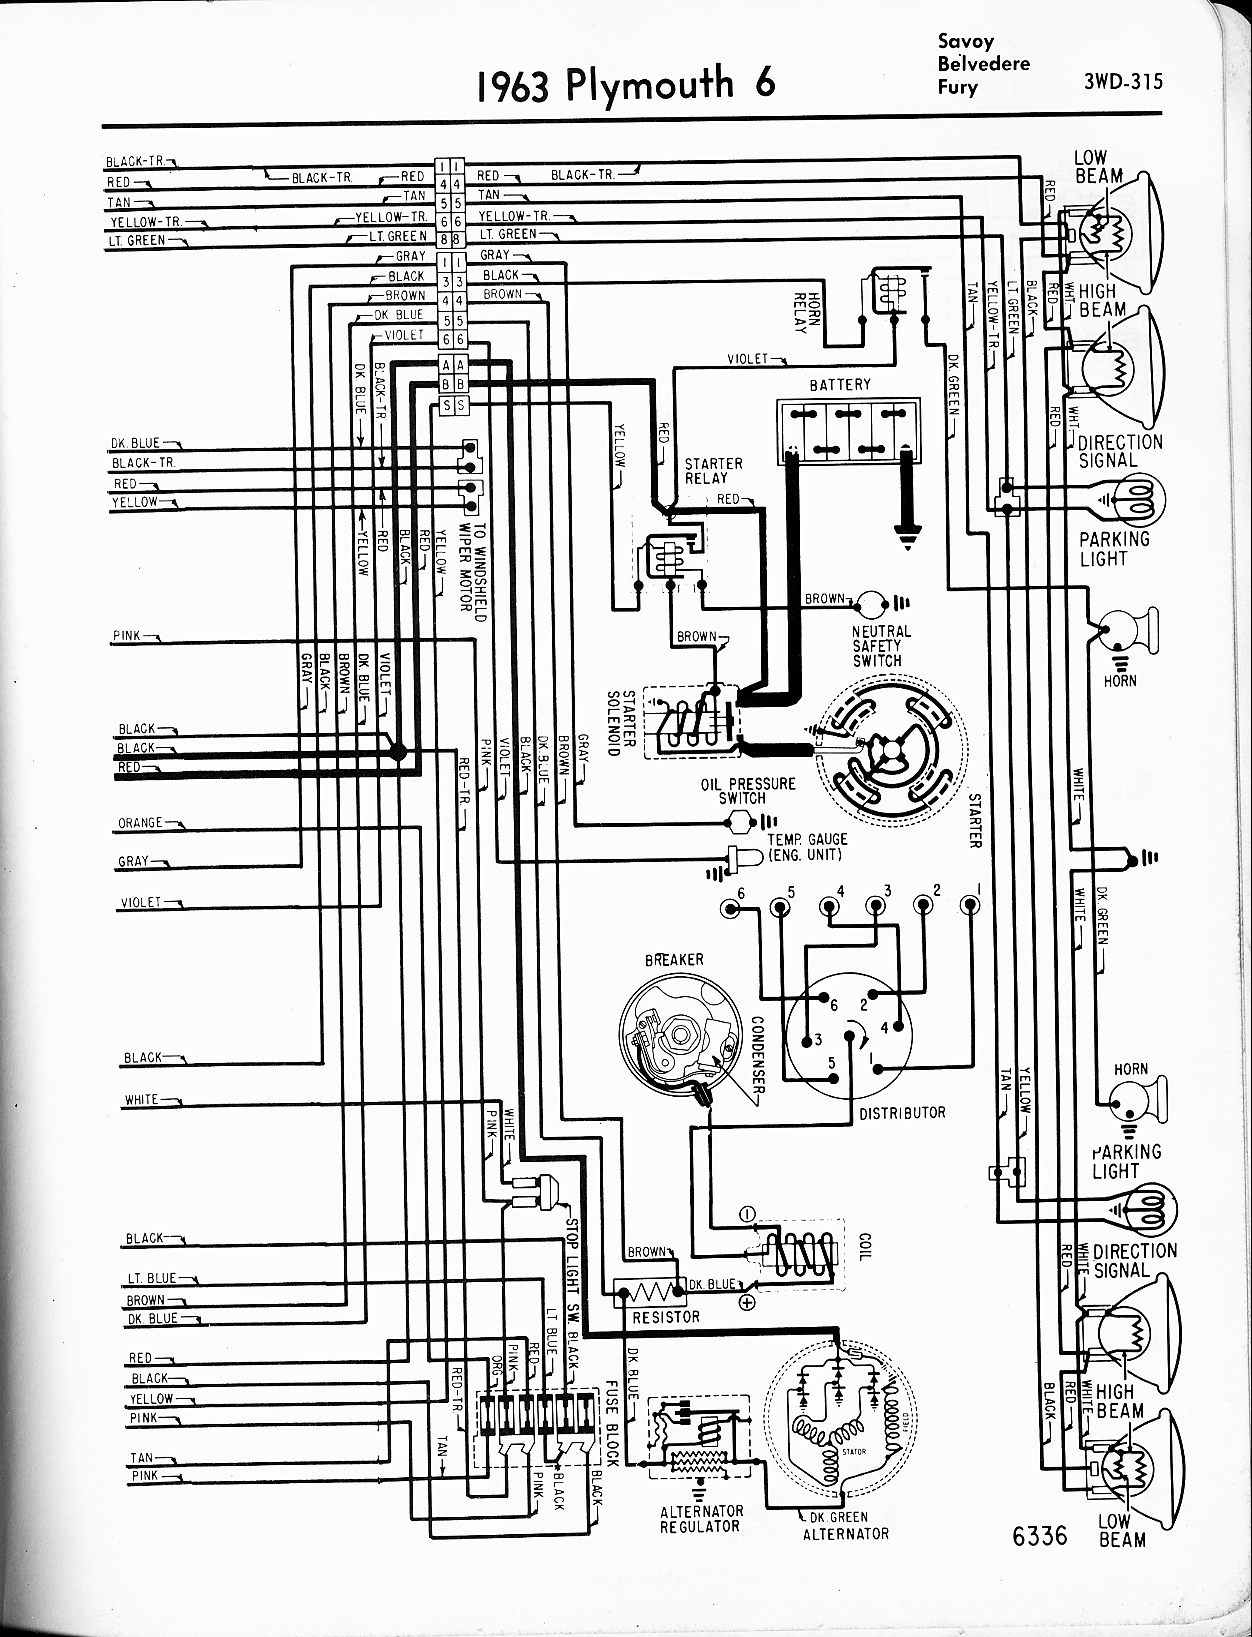 1956 - 1965 Plymouth Wiring - The Old Car Manual ProjectThe Old Car Manual Project